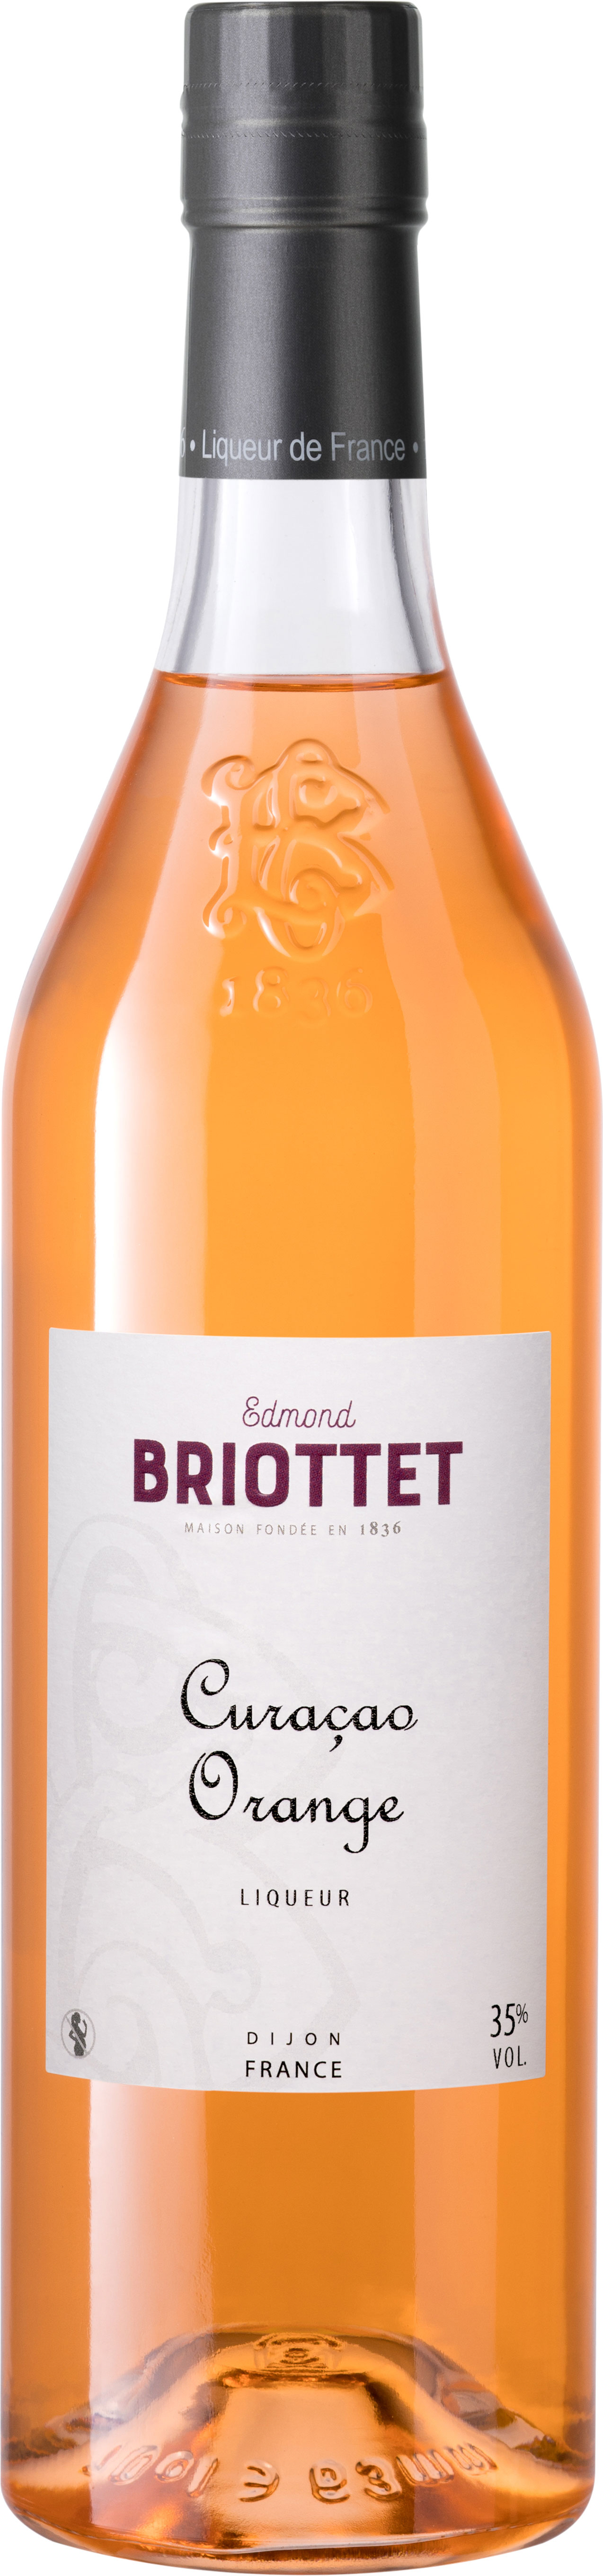 Briottet - Orange Curacao 70cl Bottle